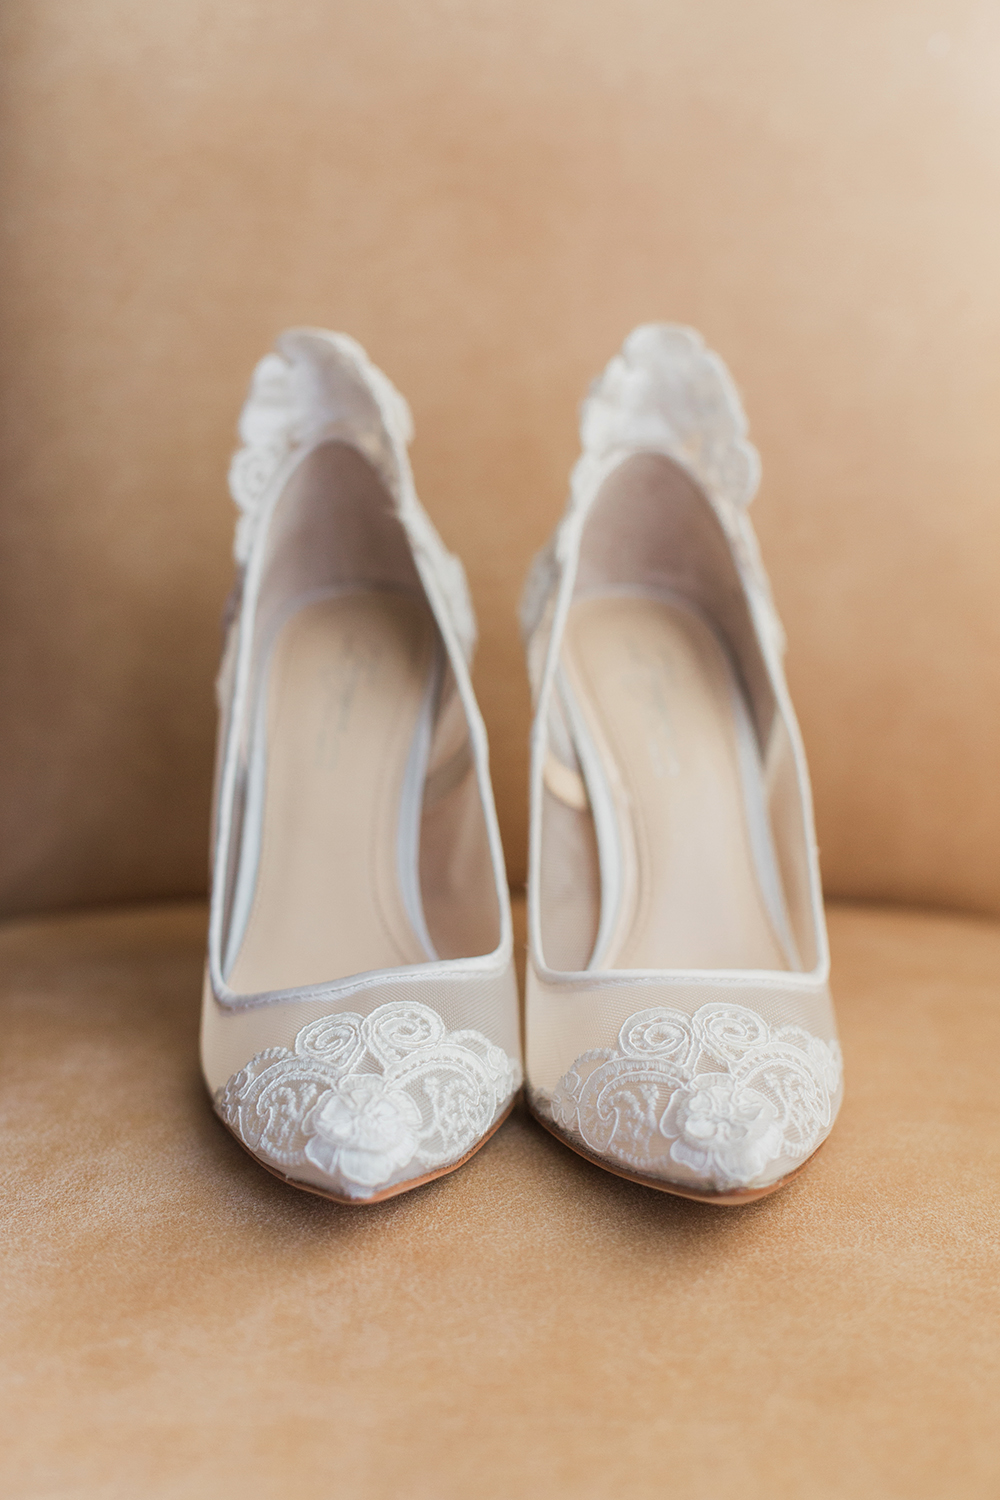 Nancy's white lace wedding shoes.